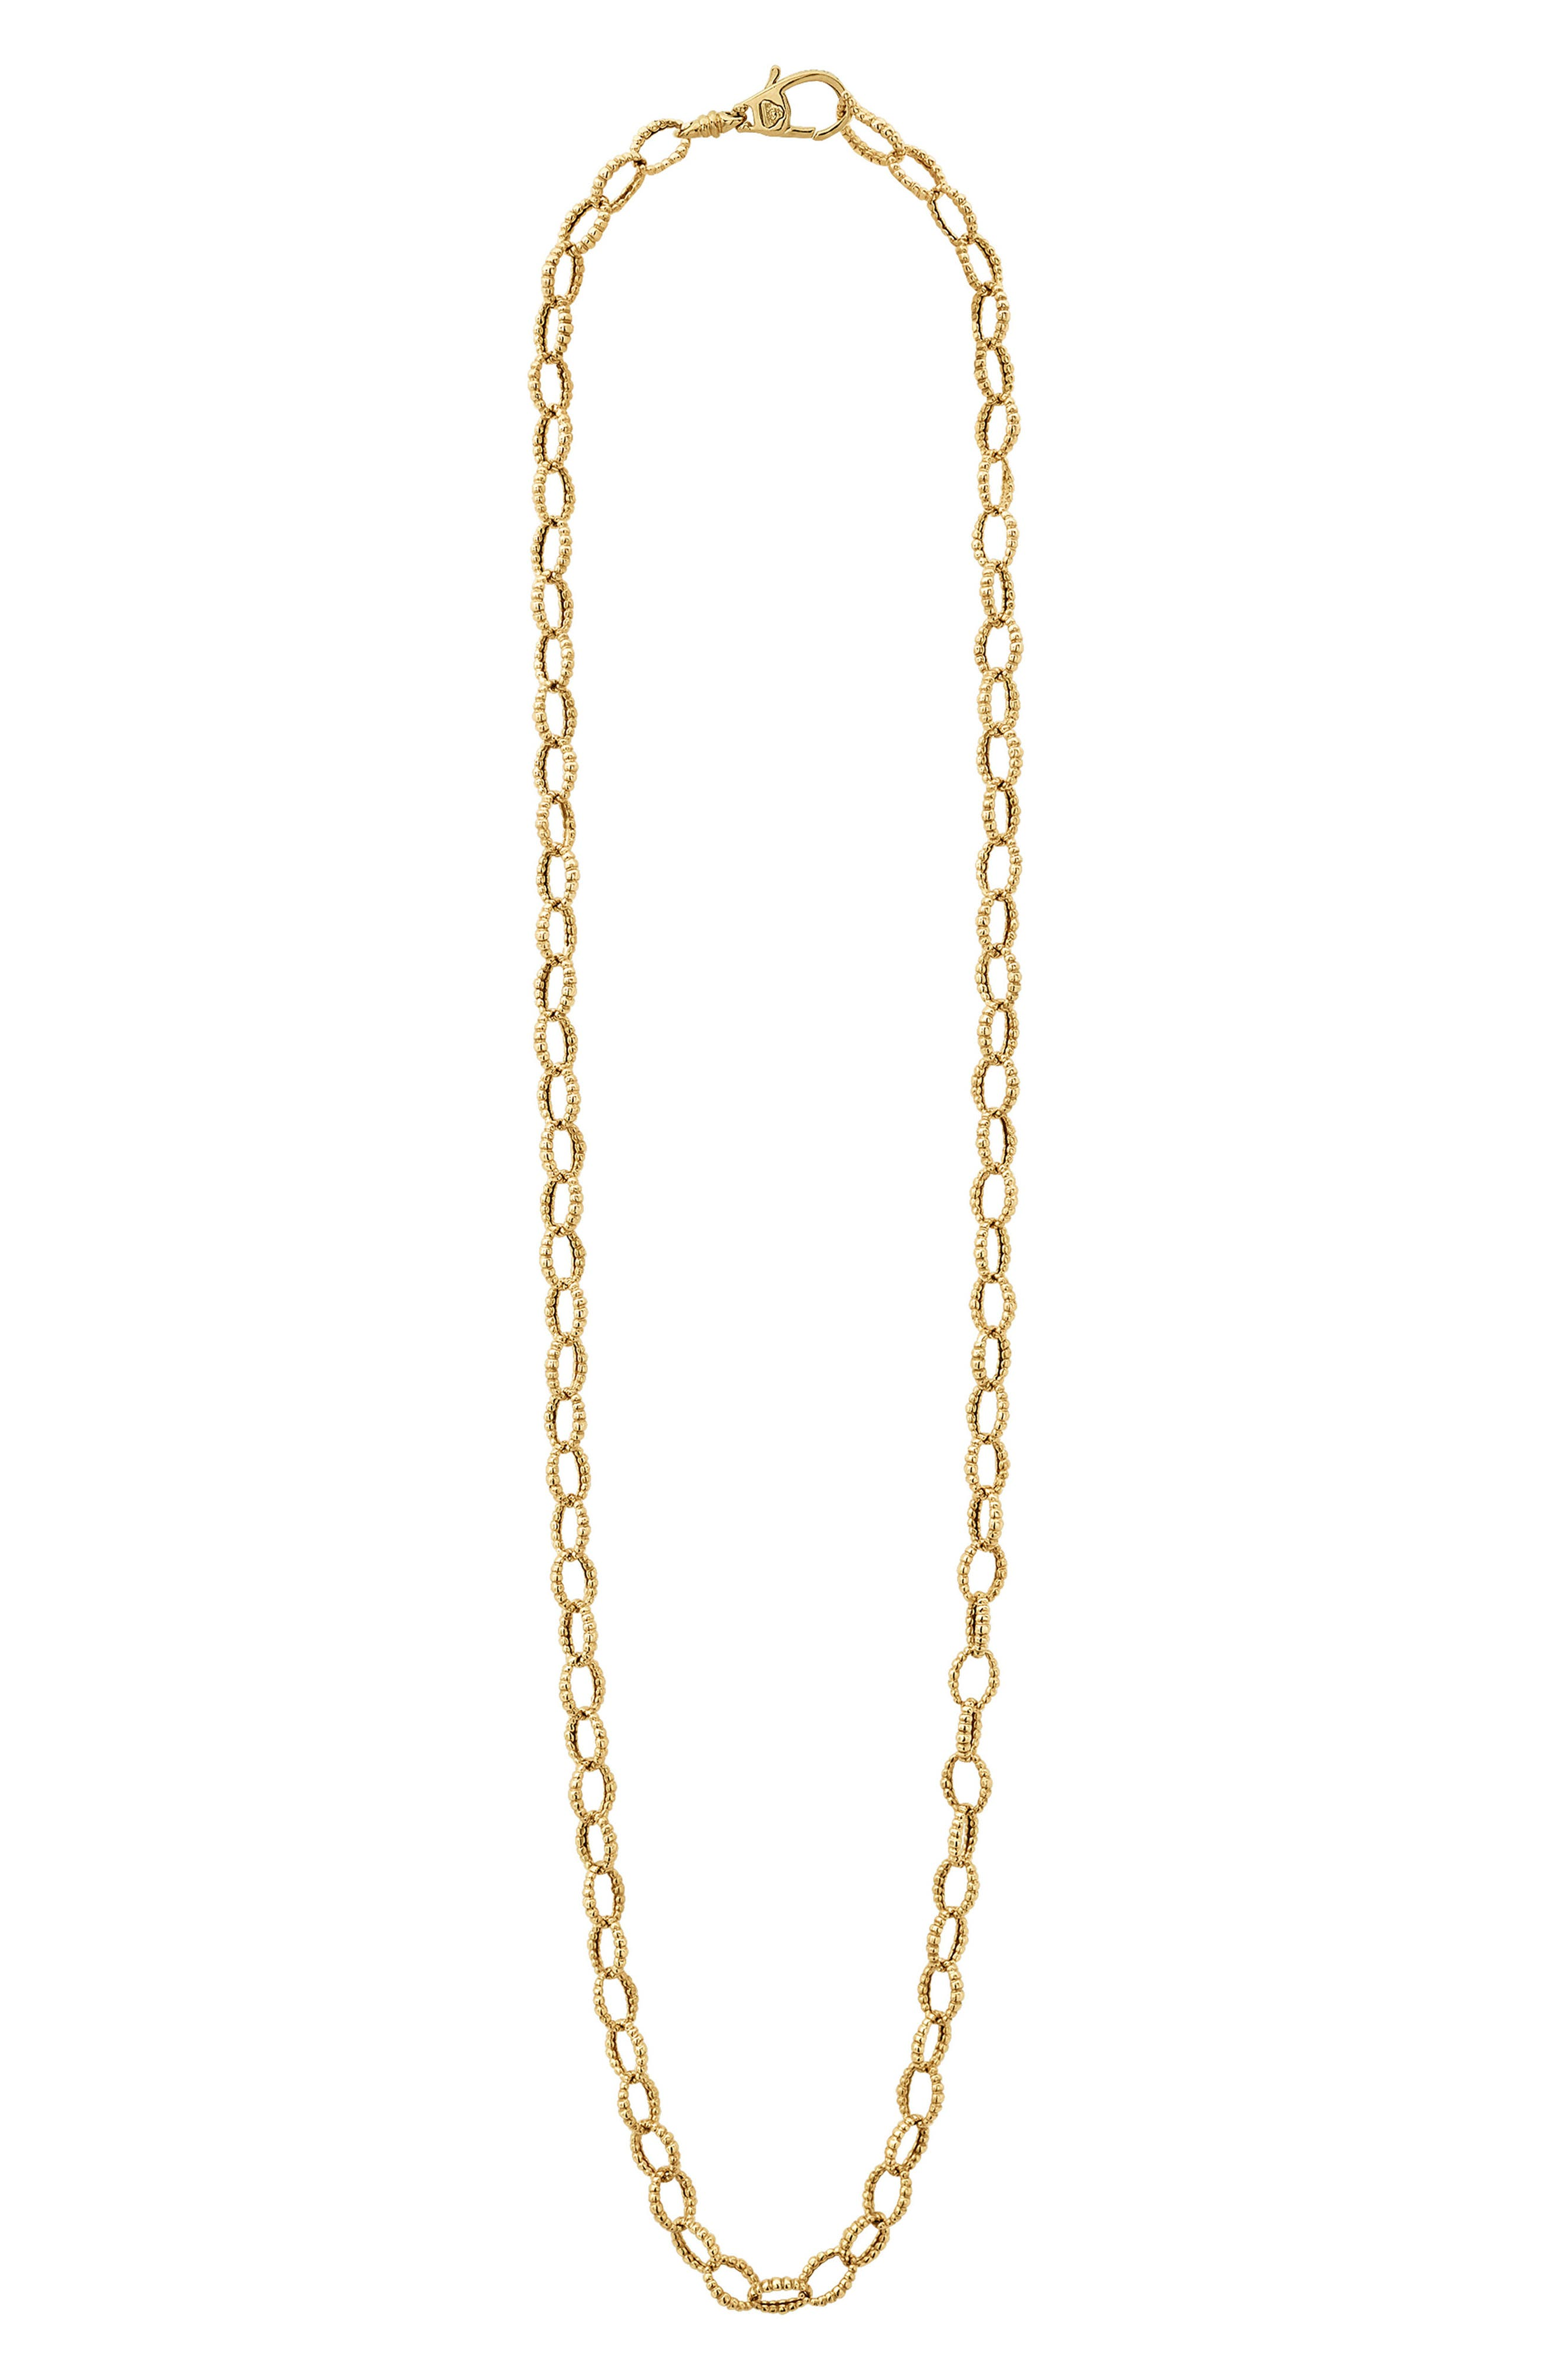 Caviar Gold Fluted Oval Link Necklace,                         Main,                         color, Gold